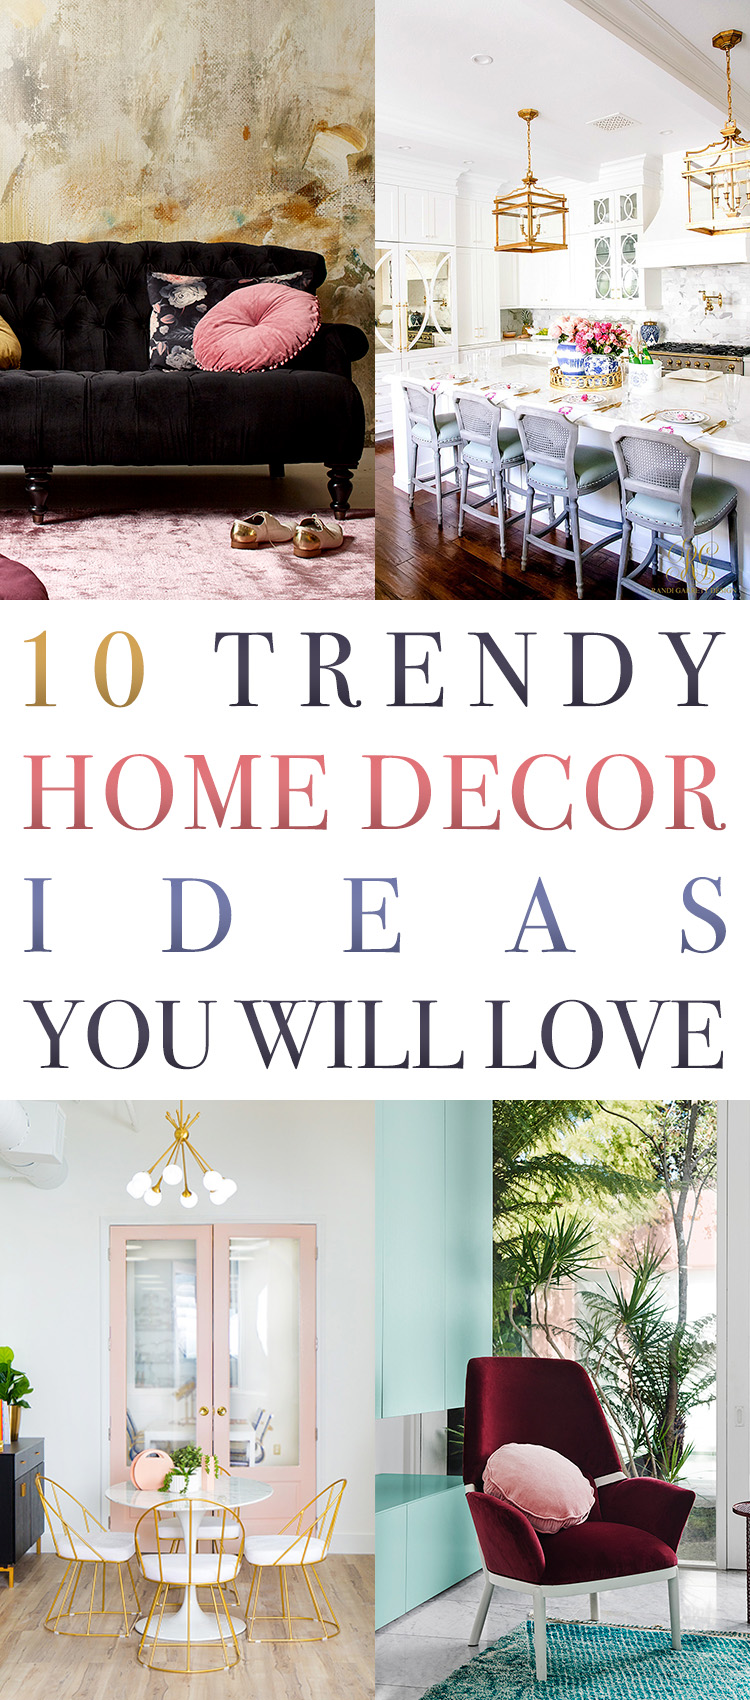 From Trendy Velvet Sofau0027s To The Trending New Colors Of 2018 To Before And  After Room Makeover And More! Grab That Cup Of Your Favorite Brew And Put  Those ...